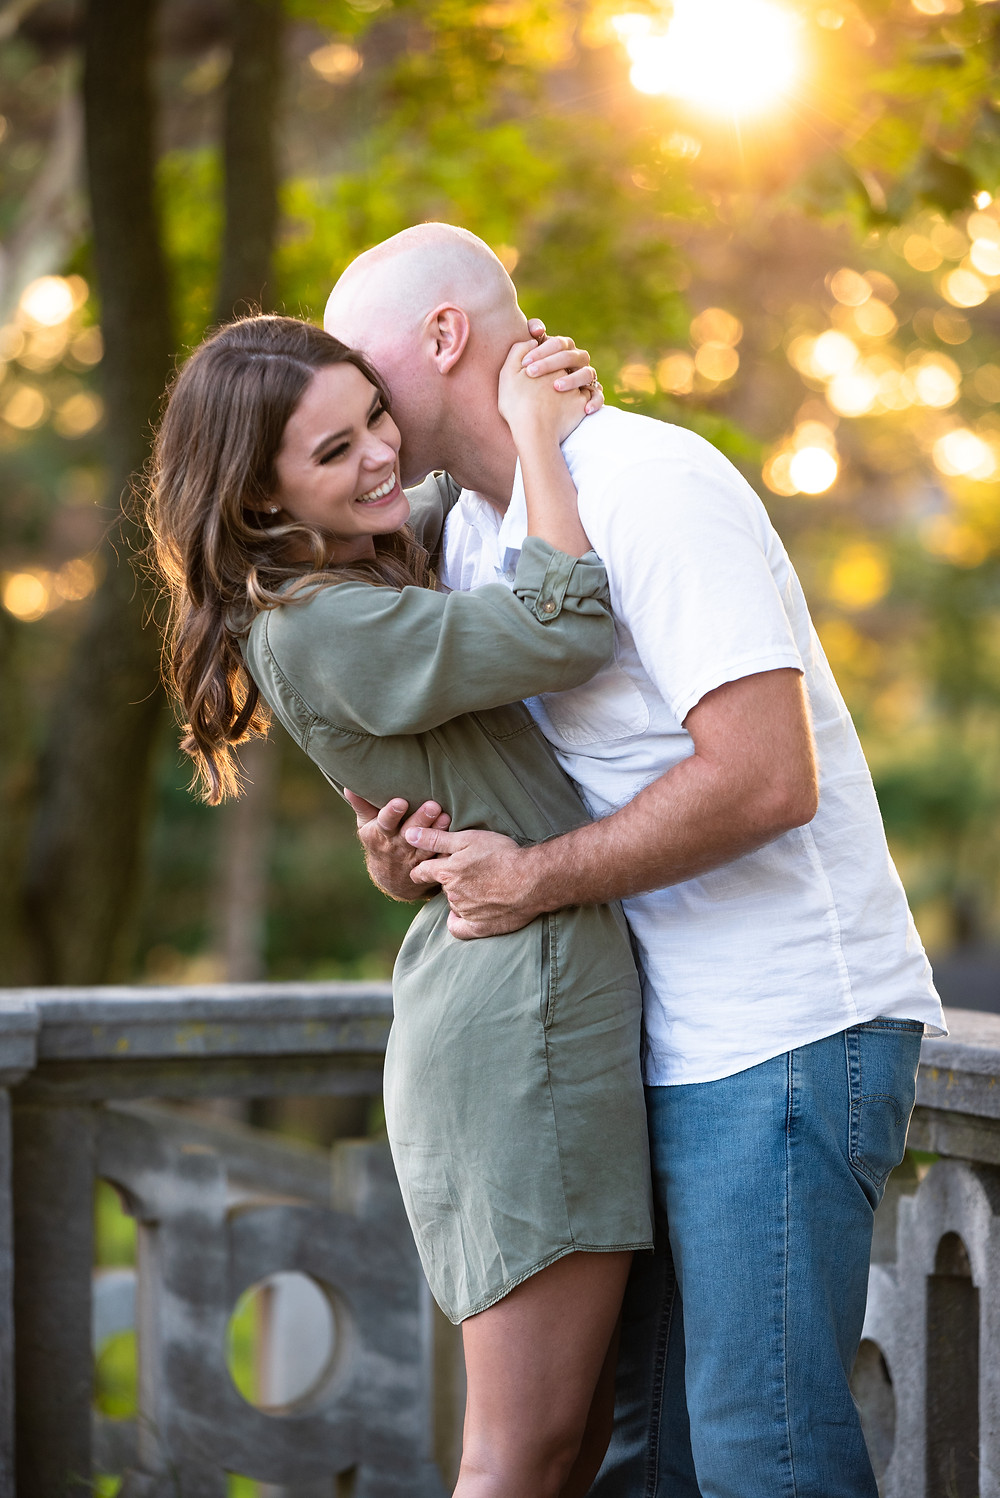 Sunset engagement session at Mellon Park in Pittsburgh